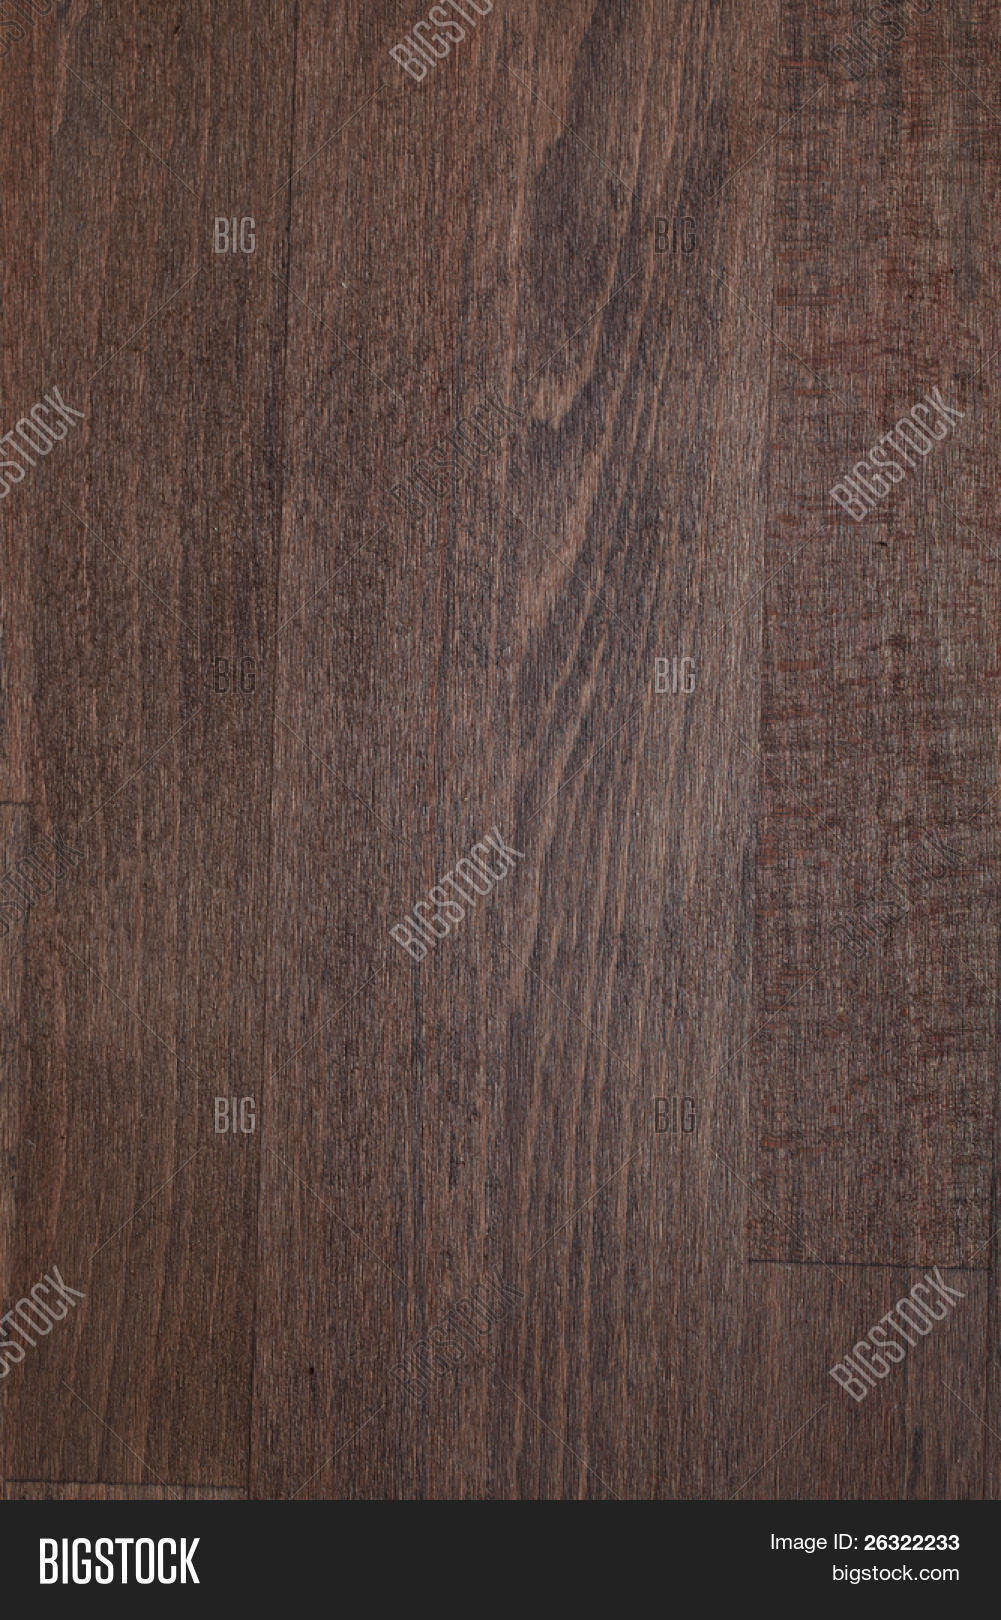 Texture Of Beech Wood Toned By Dark Walnut Stain